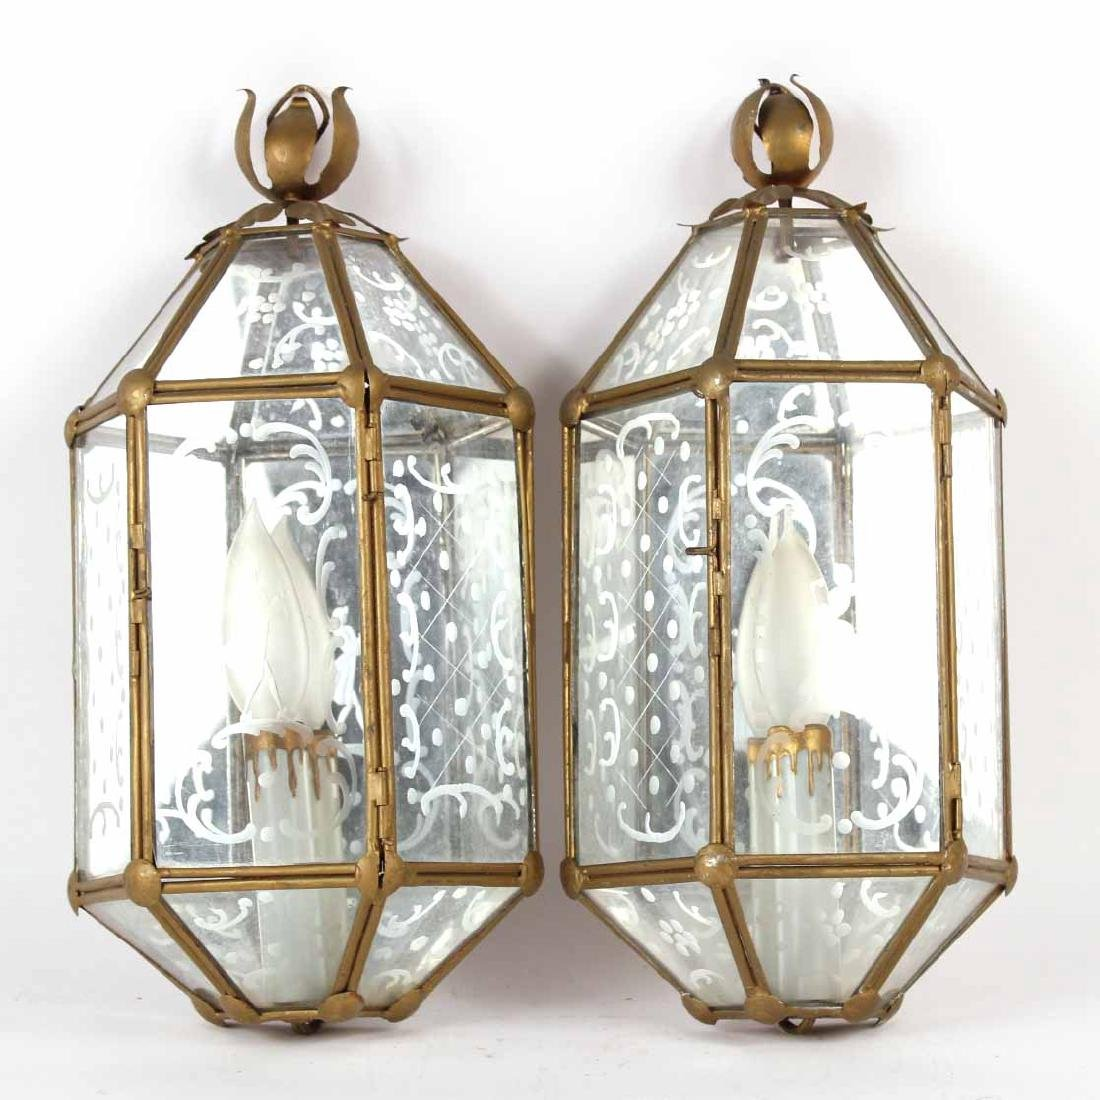 Pair of Gold-Painted Metal and Glass Wall Sconces